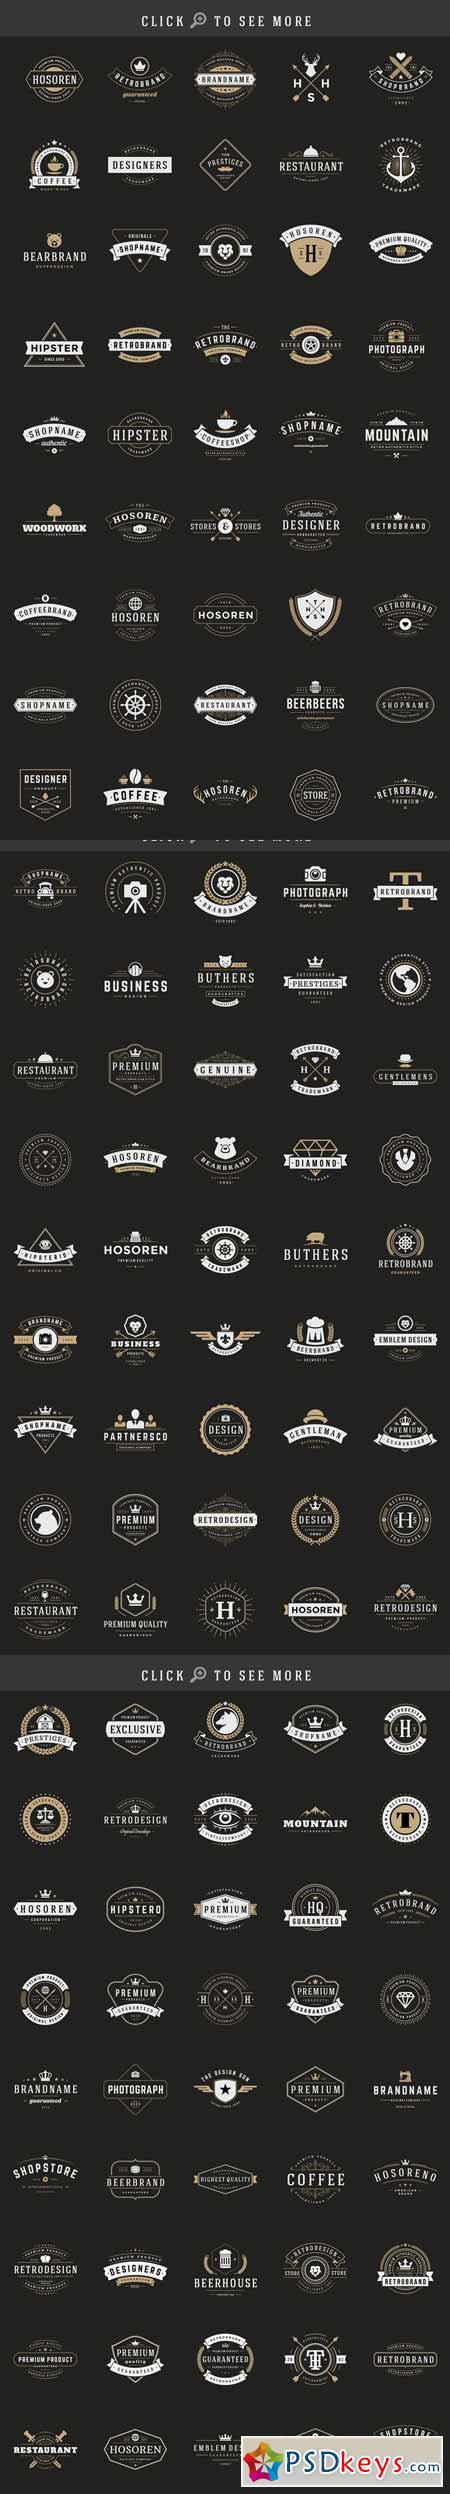 150 Retro Vintage Logotypes 208025